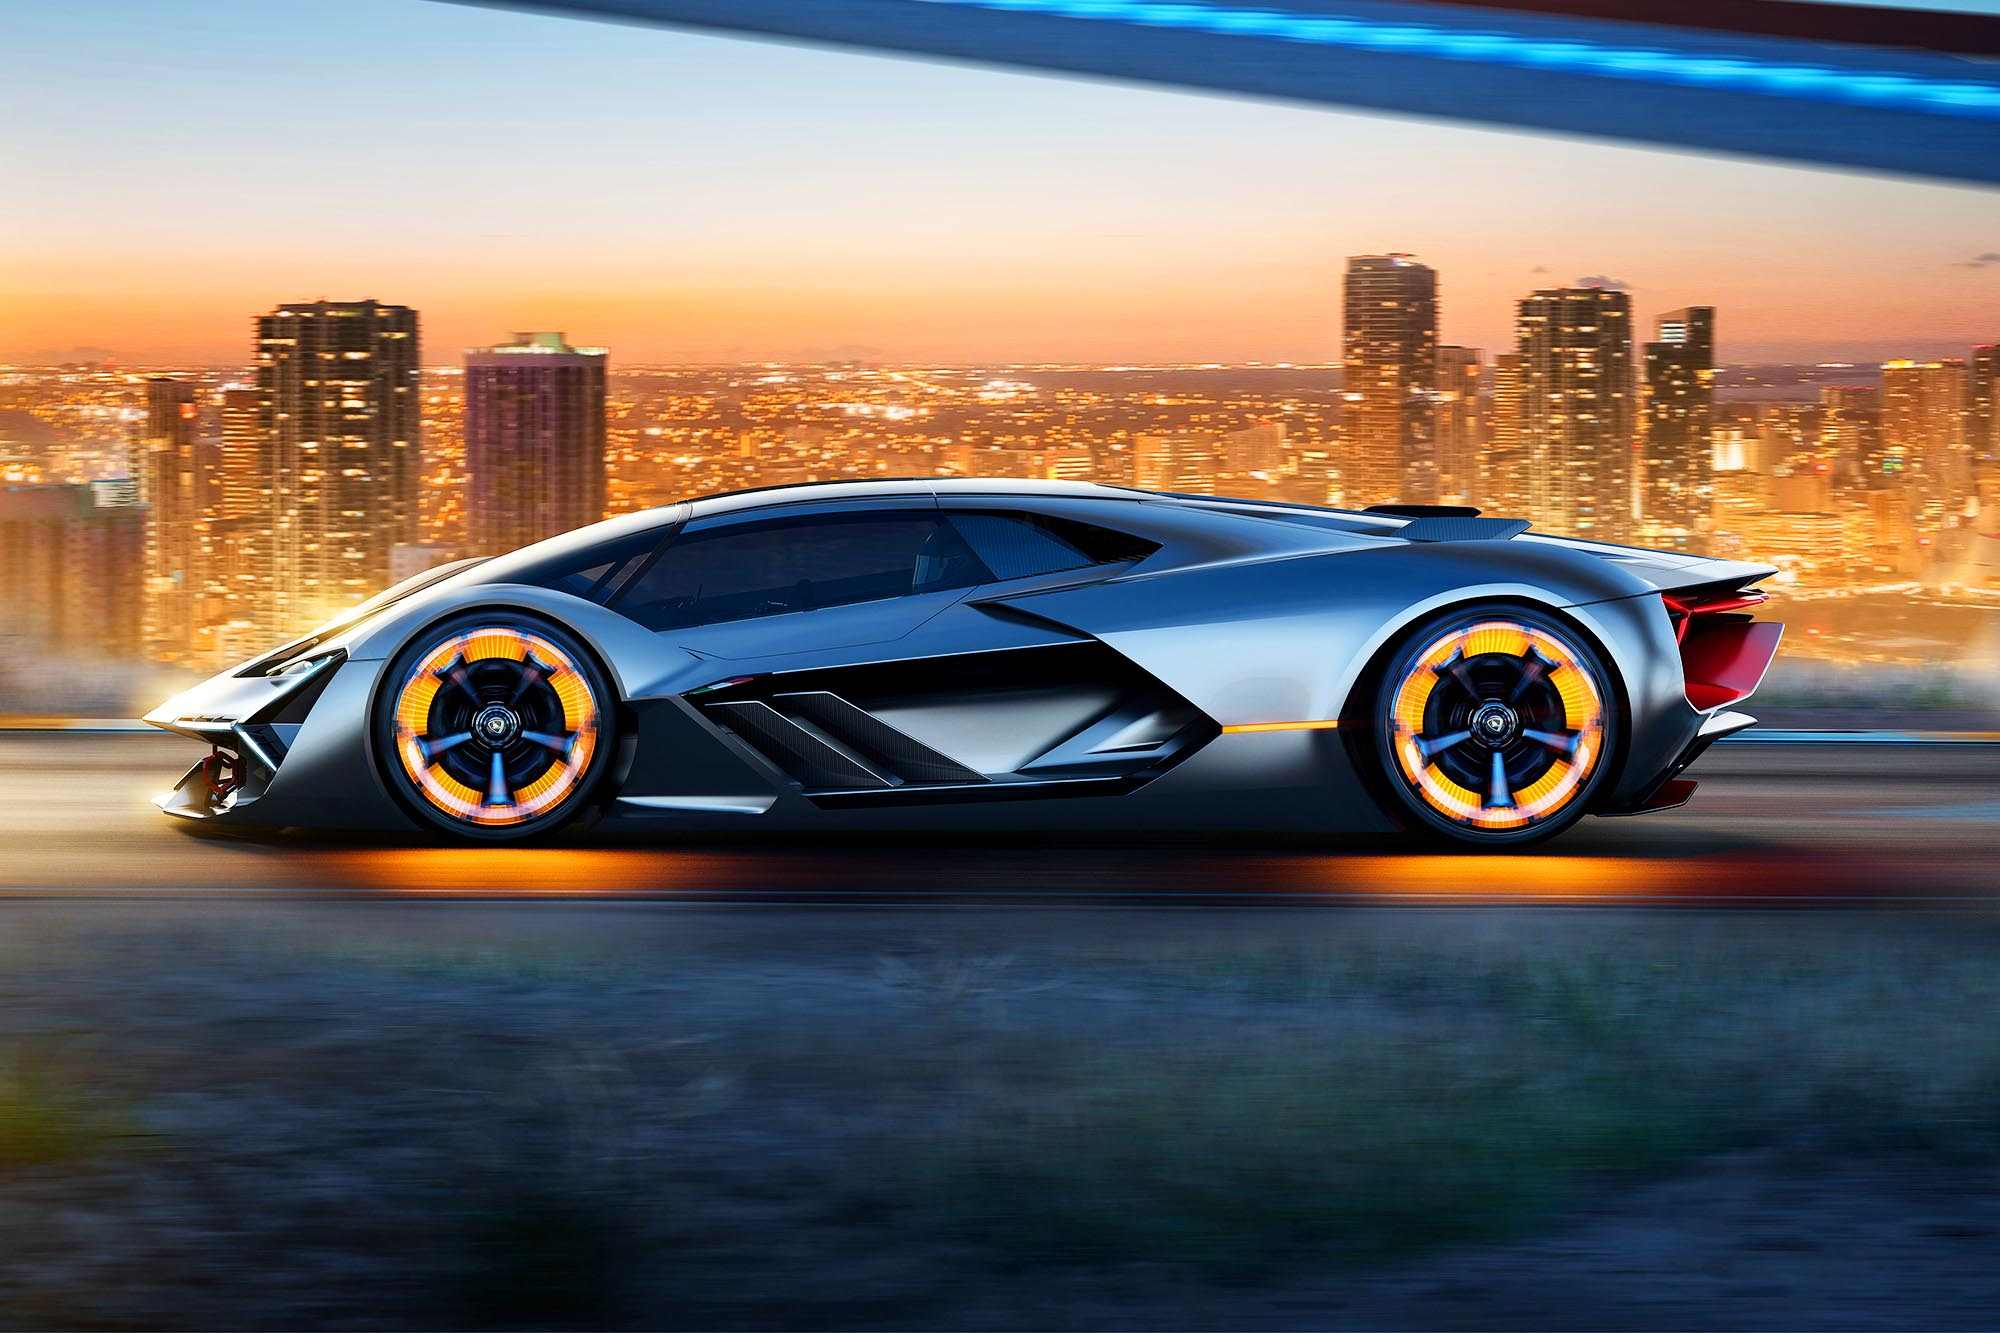 lamborghini terzo millennio il video della supercar elettrica qn motori. Black Bedroom Furniture Sets. Home Design Ideas